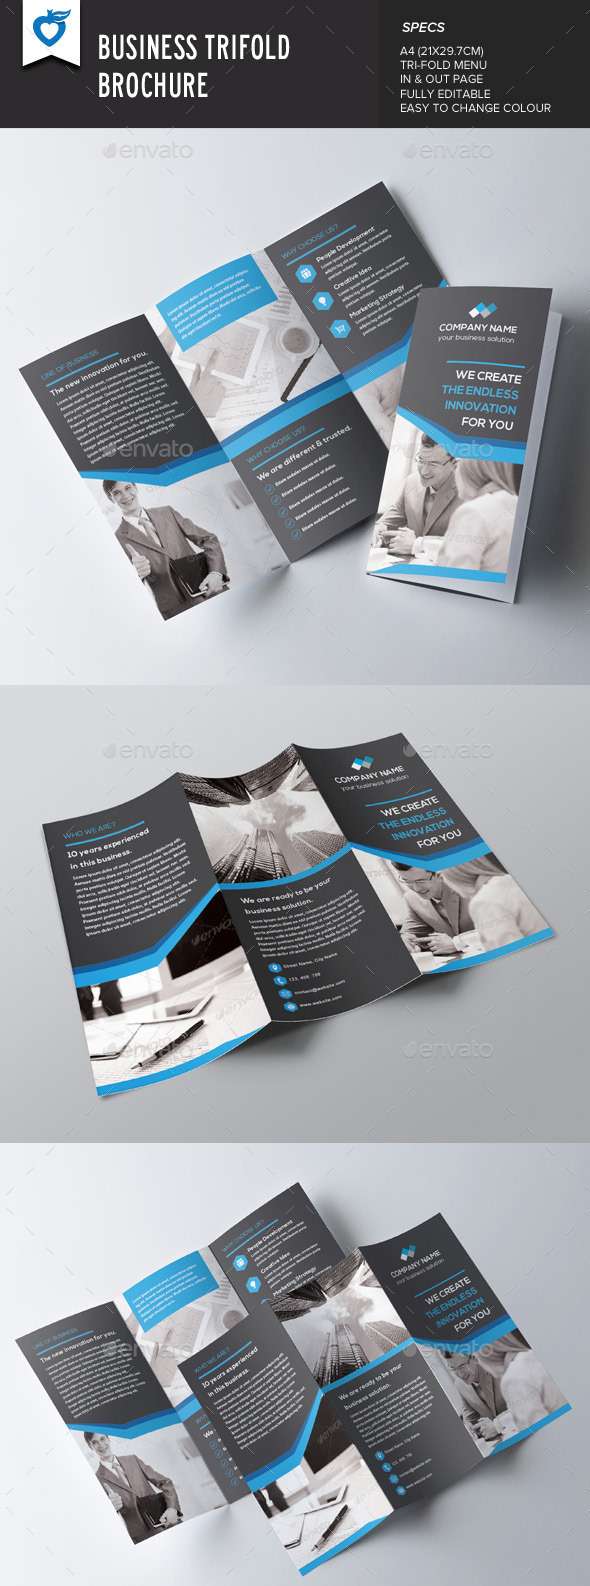 GraphicRiver Business Trifold Brochure 8990195